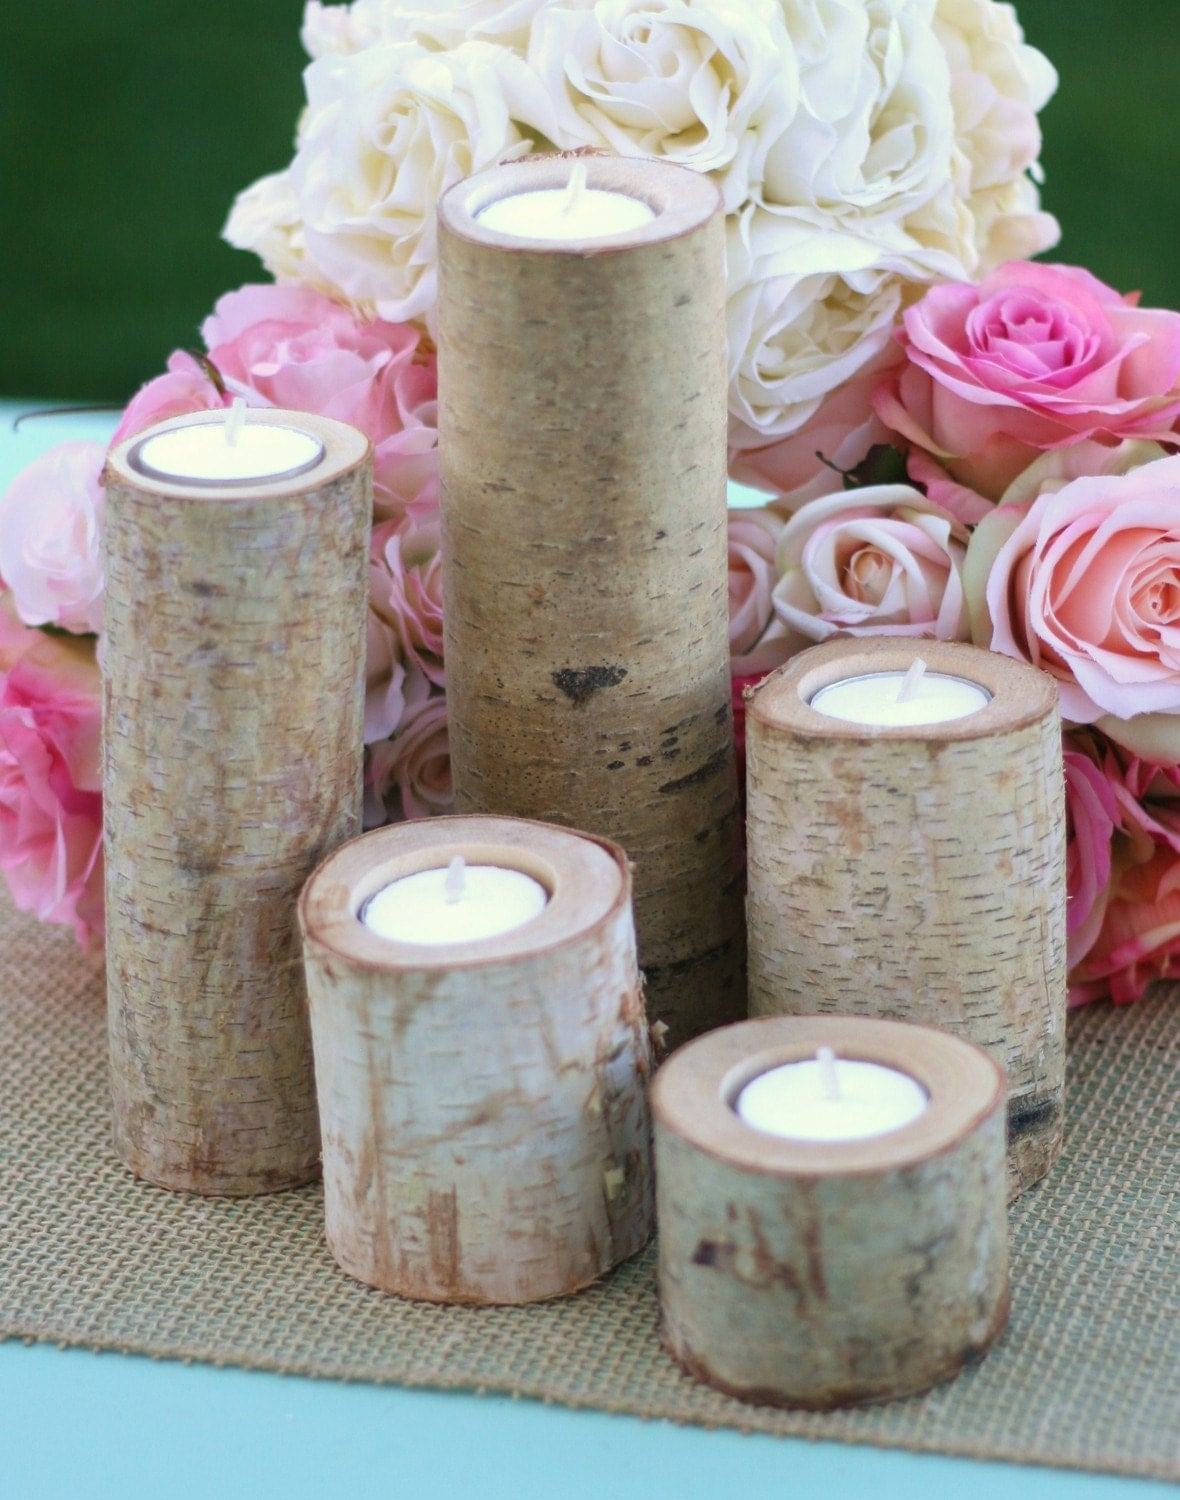 Birch Candles Centerpiece Votive Tea Light Candle Holders SET of 25 - braggingbags